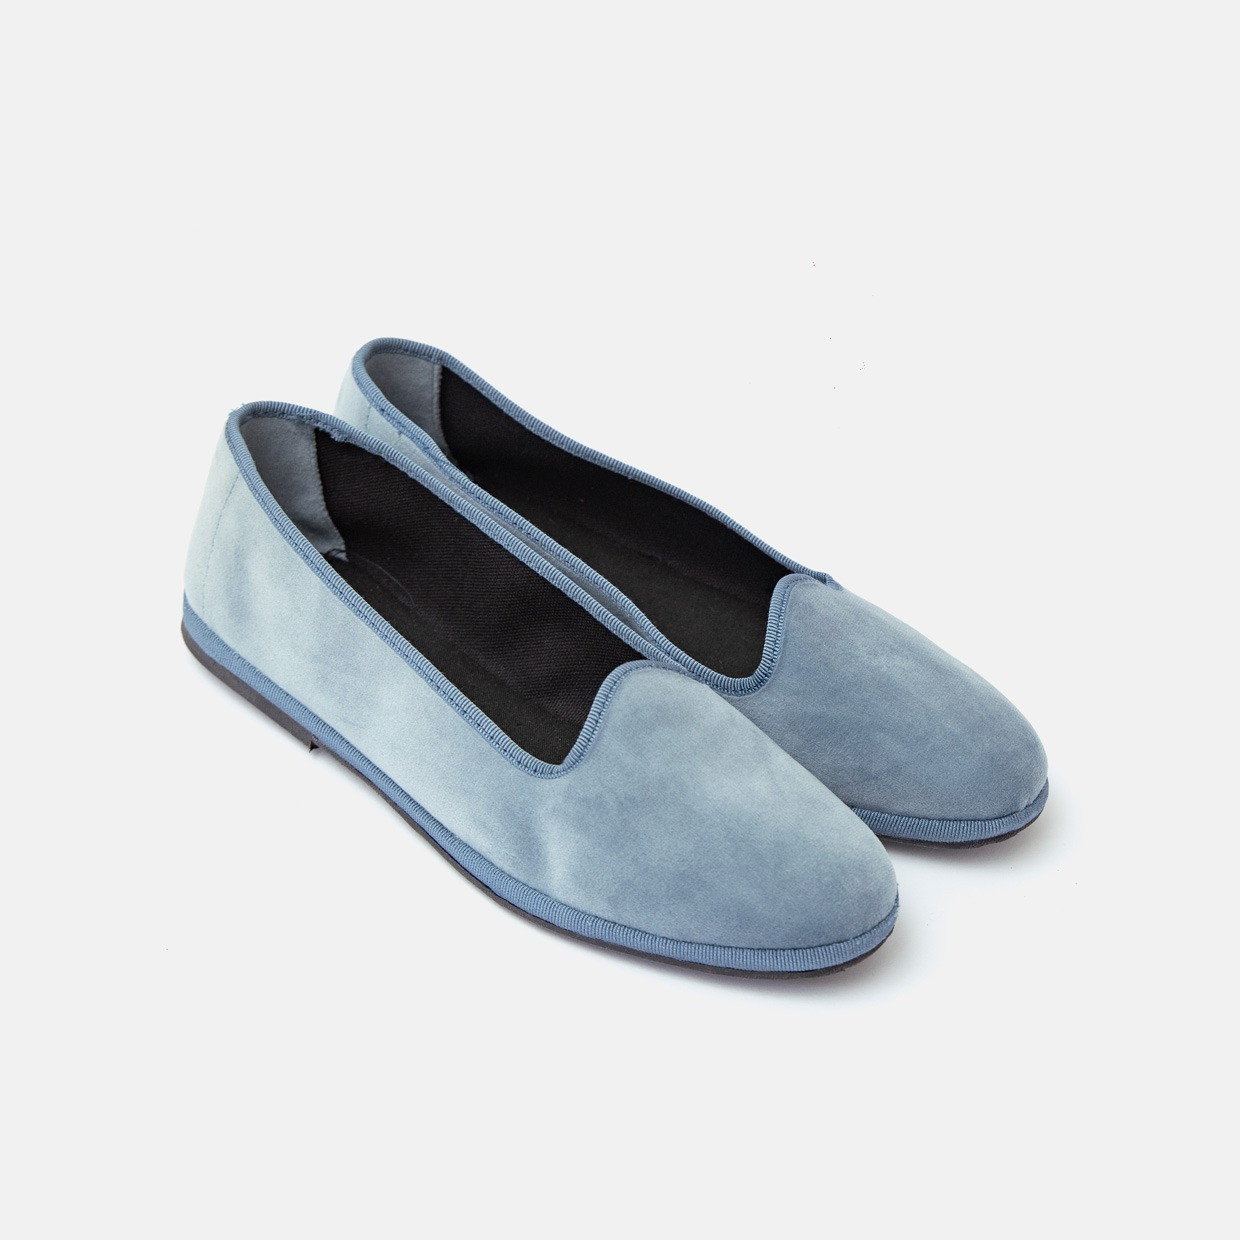 The COSY shoes - 2.0